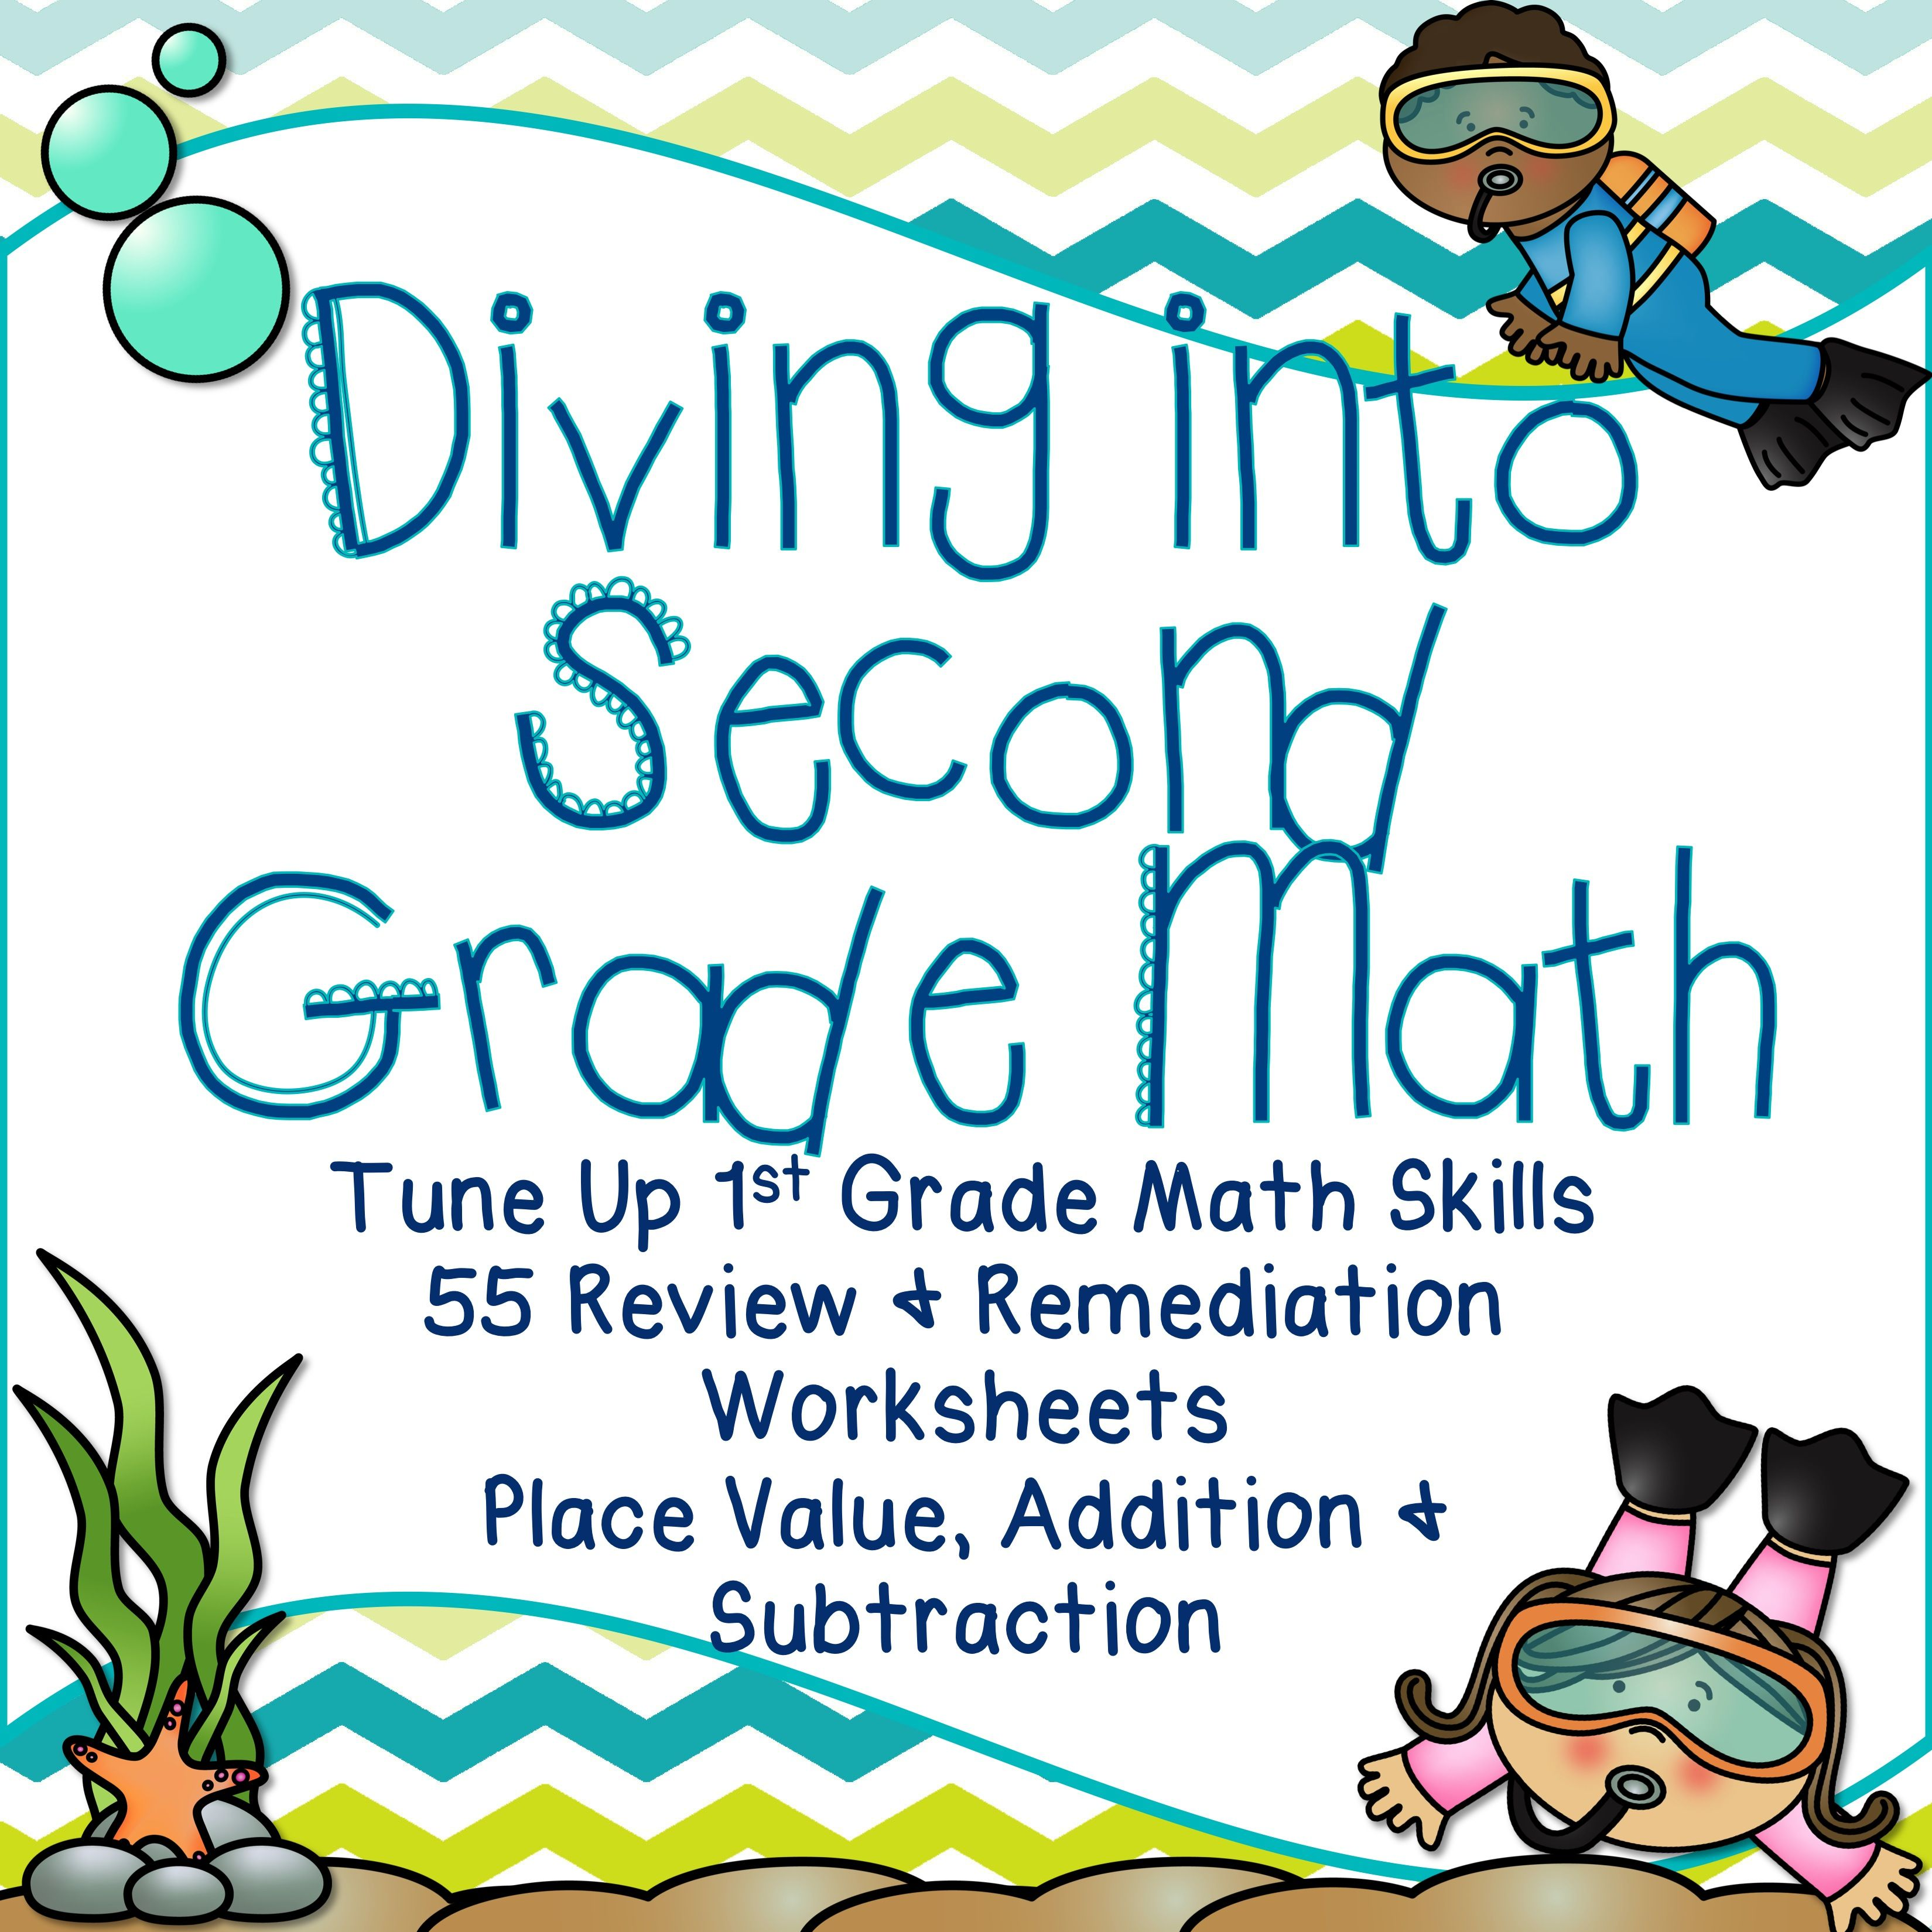 Second Grade Back to School Math Review Printables | Maths, School ...